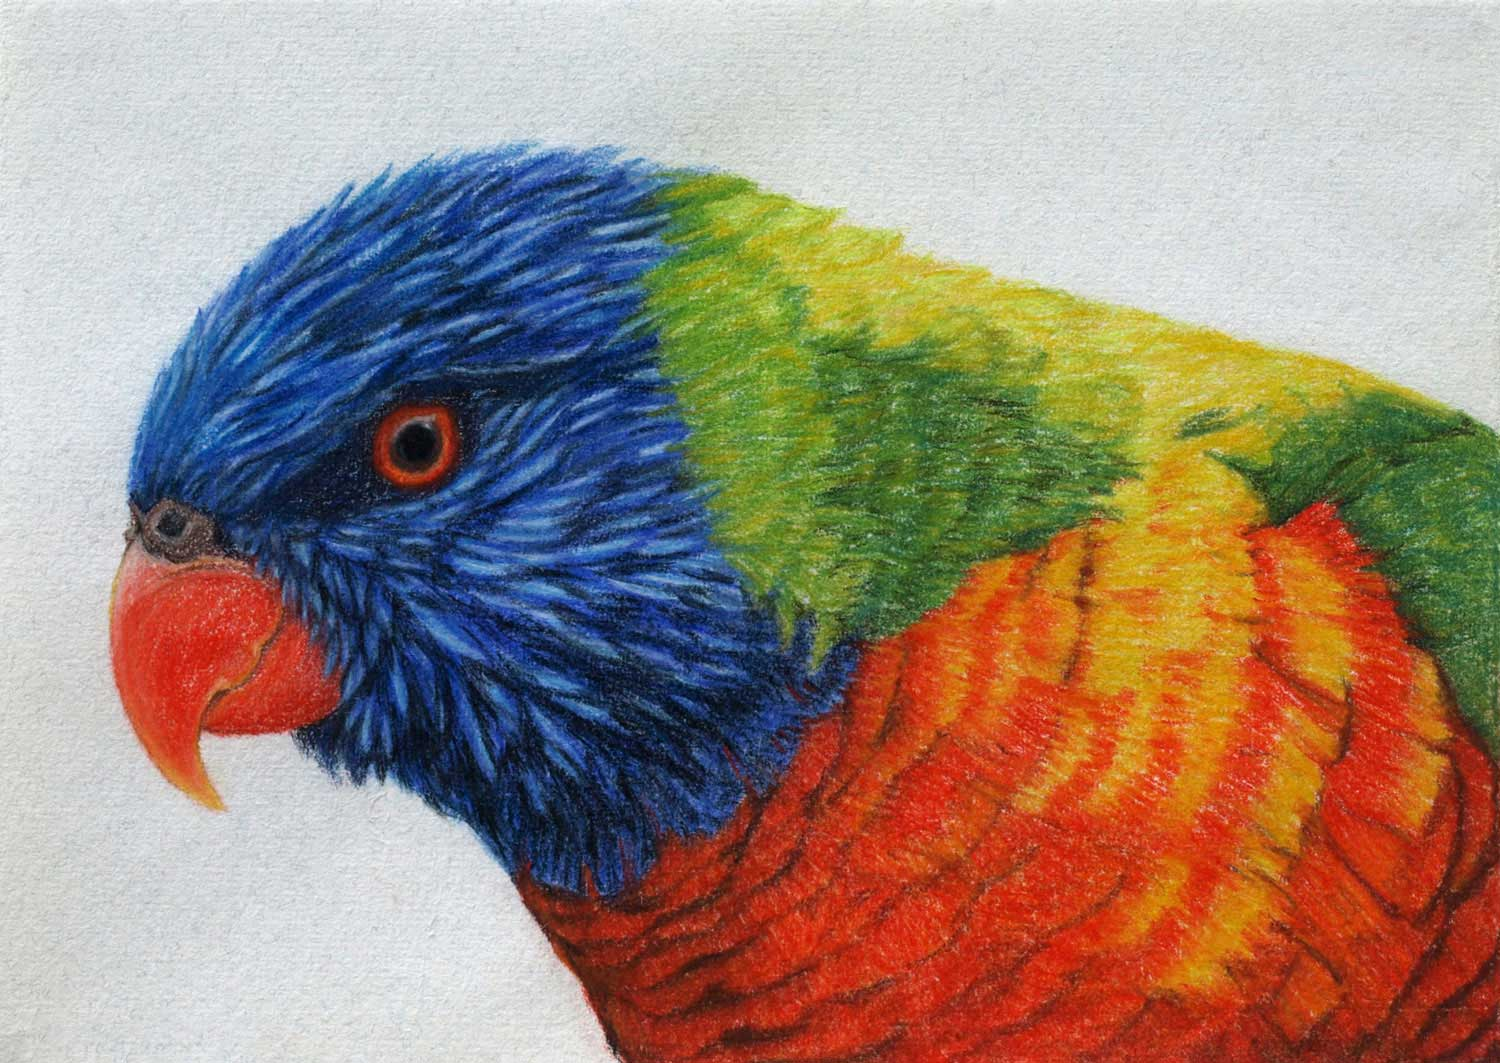 Rainbow Lorikeet 21 x 30 cm  Pastel on handmade paper  $800